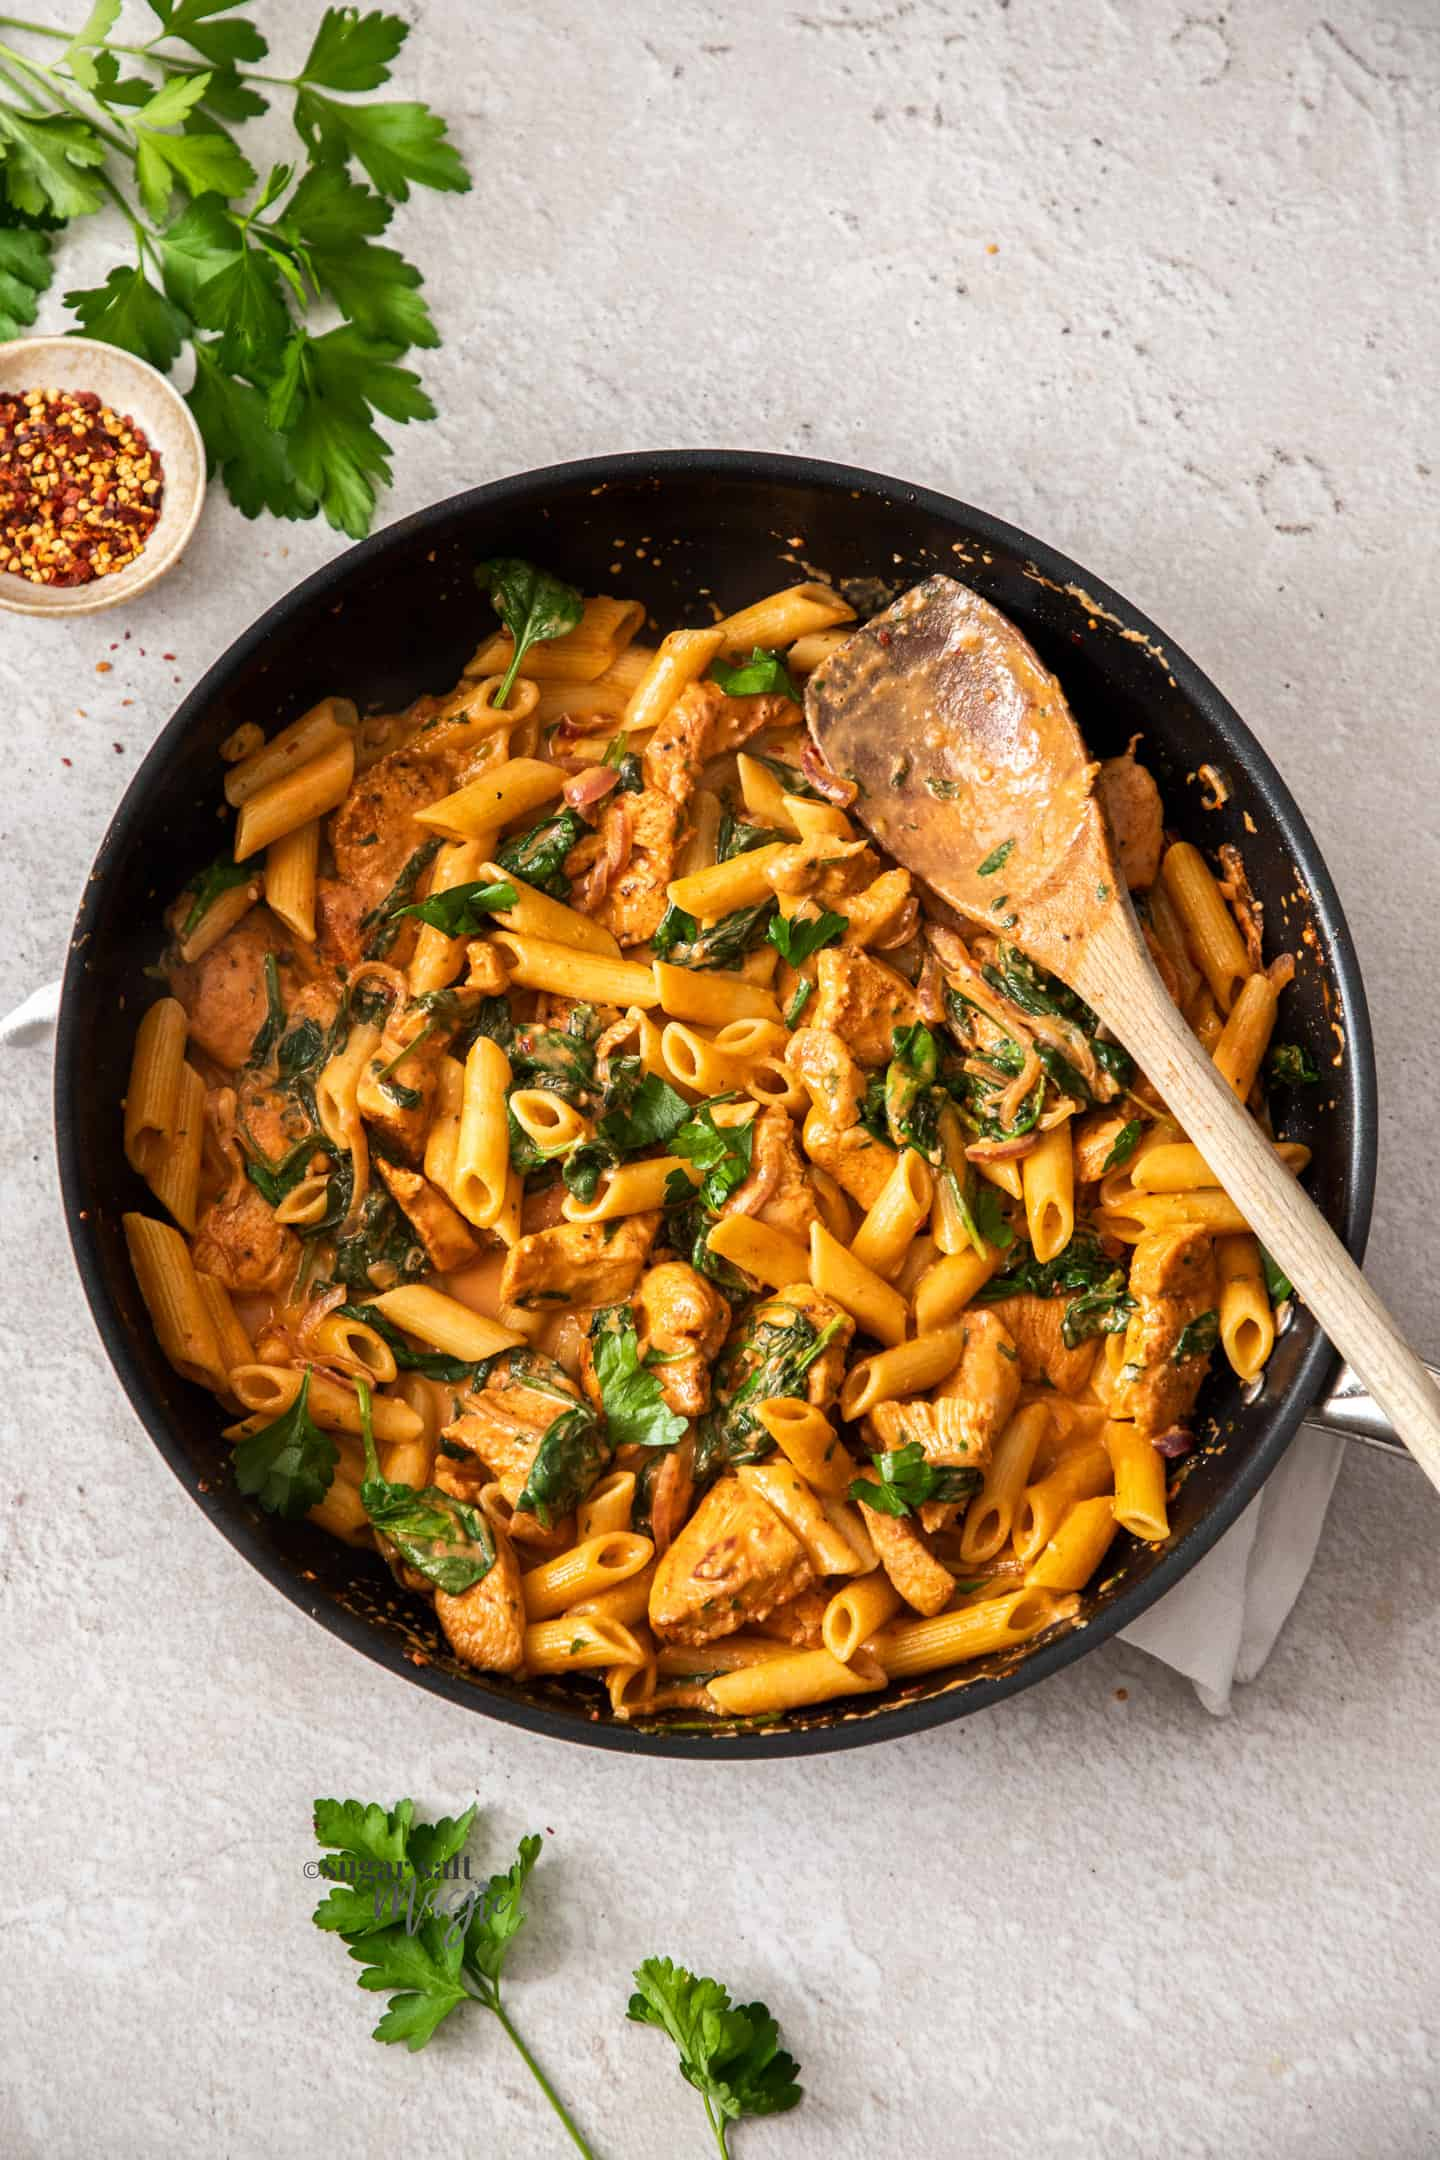 Top down view of pasta and chicken in a skillet with a wooden spoon.